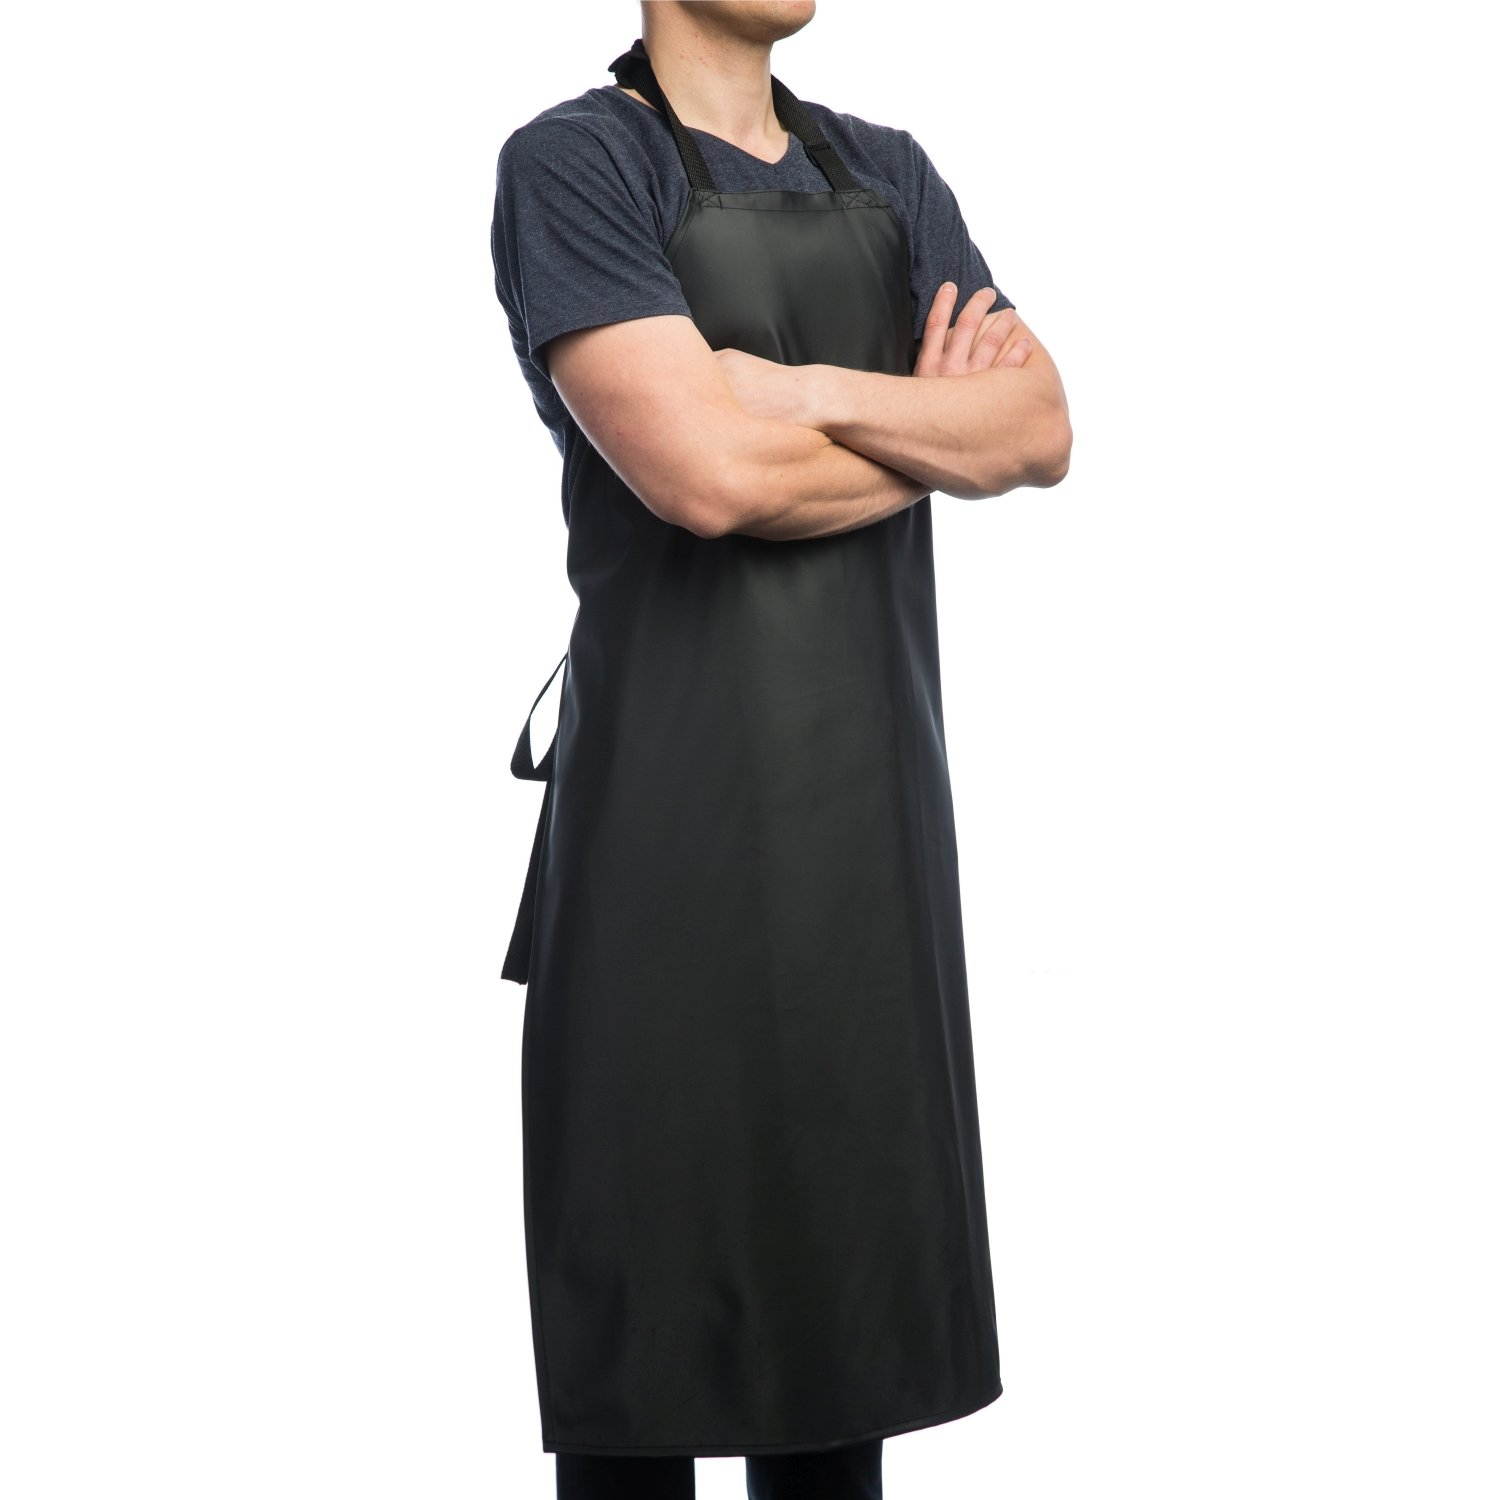 Waterproof Rubber Vinyl Apron - Upgraded 2018 Heavy Duty Model - Best for Staying Dry When Dishwashing, Lab Work, Butcher, Dog Grooming, Cleaning Fish, Projects - Industrial Chemical Resistant Plastic